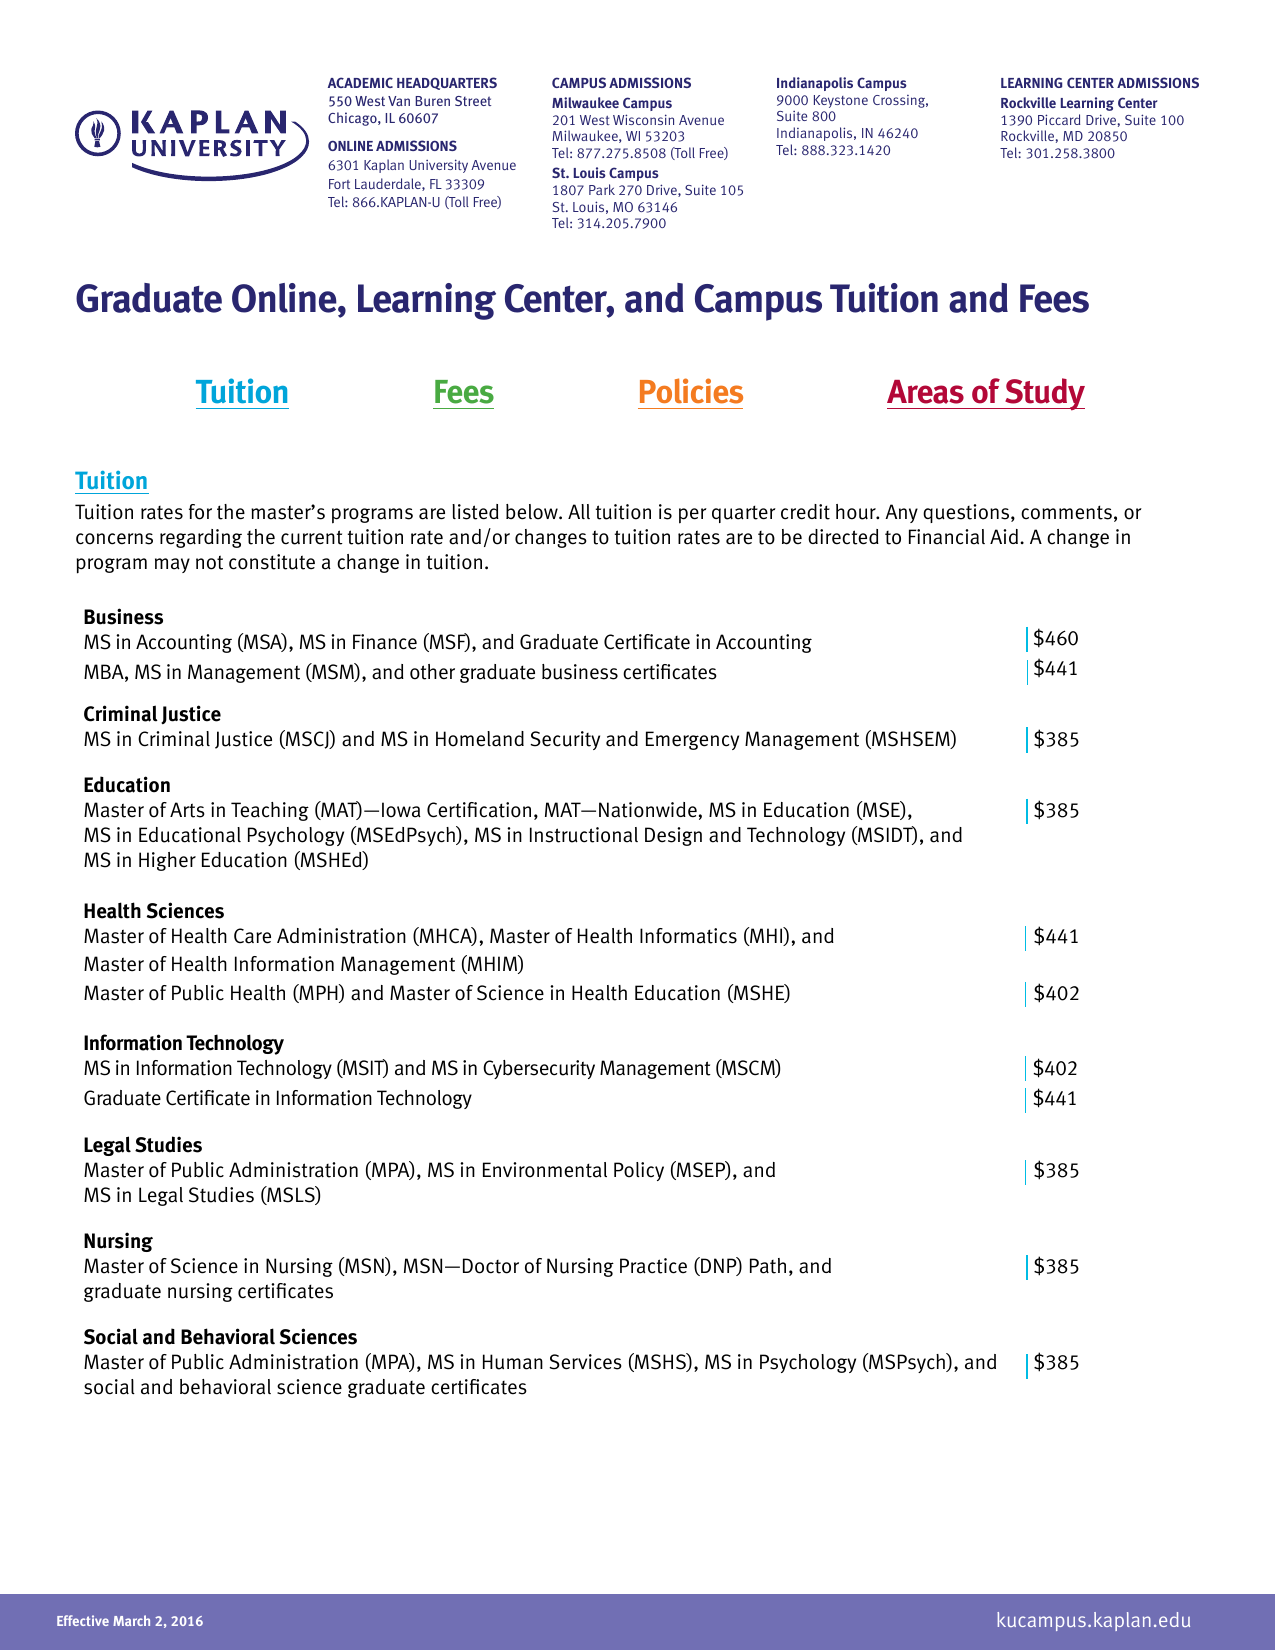 Graduate Tuition And Fees